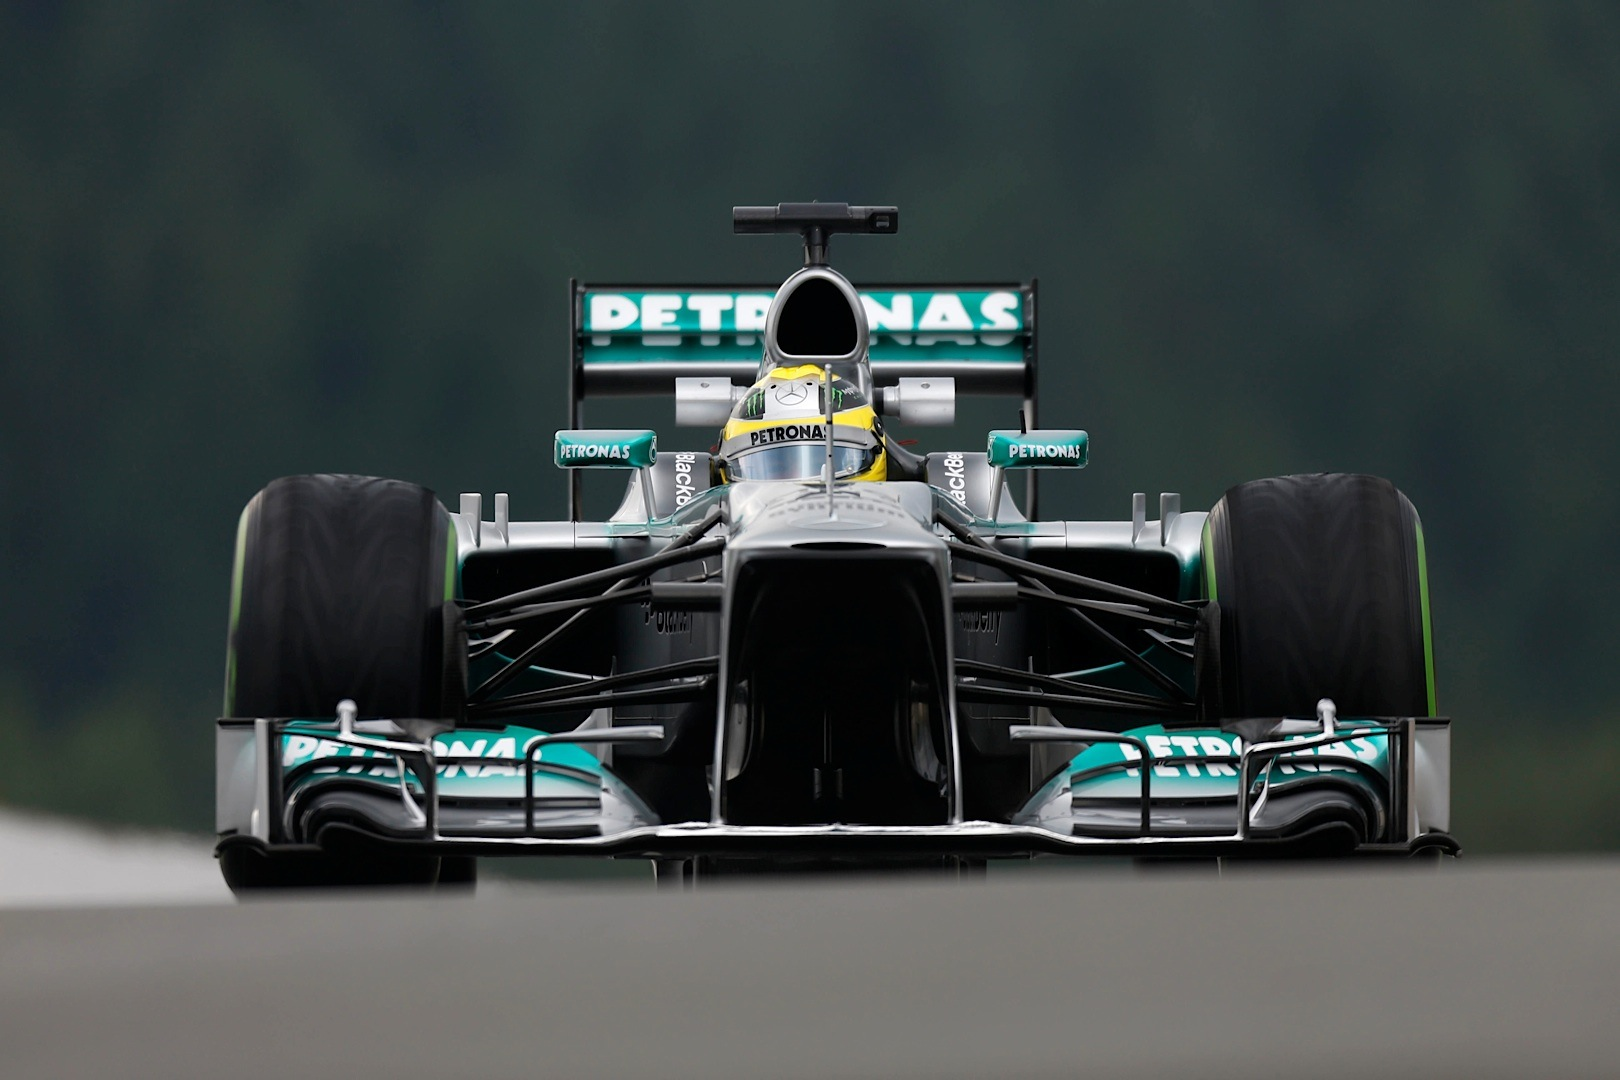 Coolest Car In The World Wallpaper Mercedes Amg F1 Team Has Strong Result At Spa